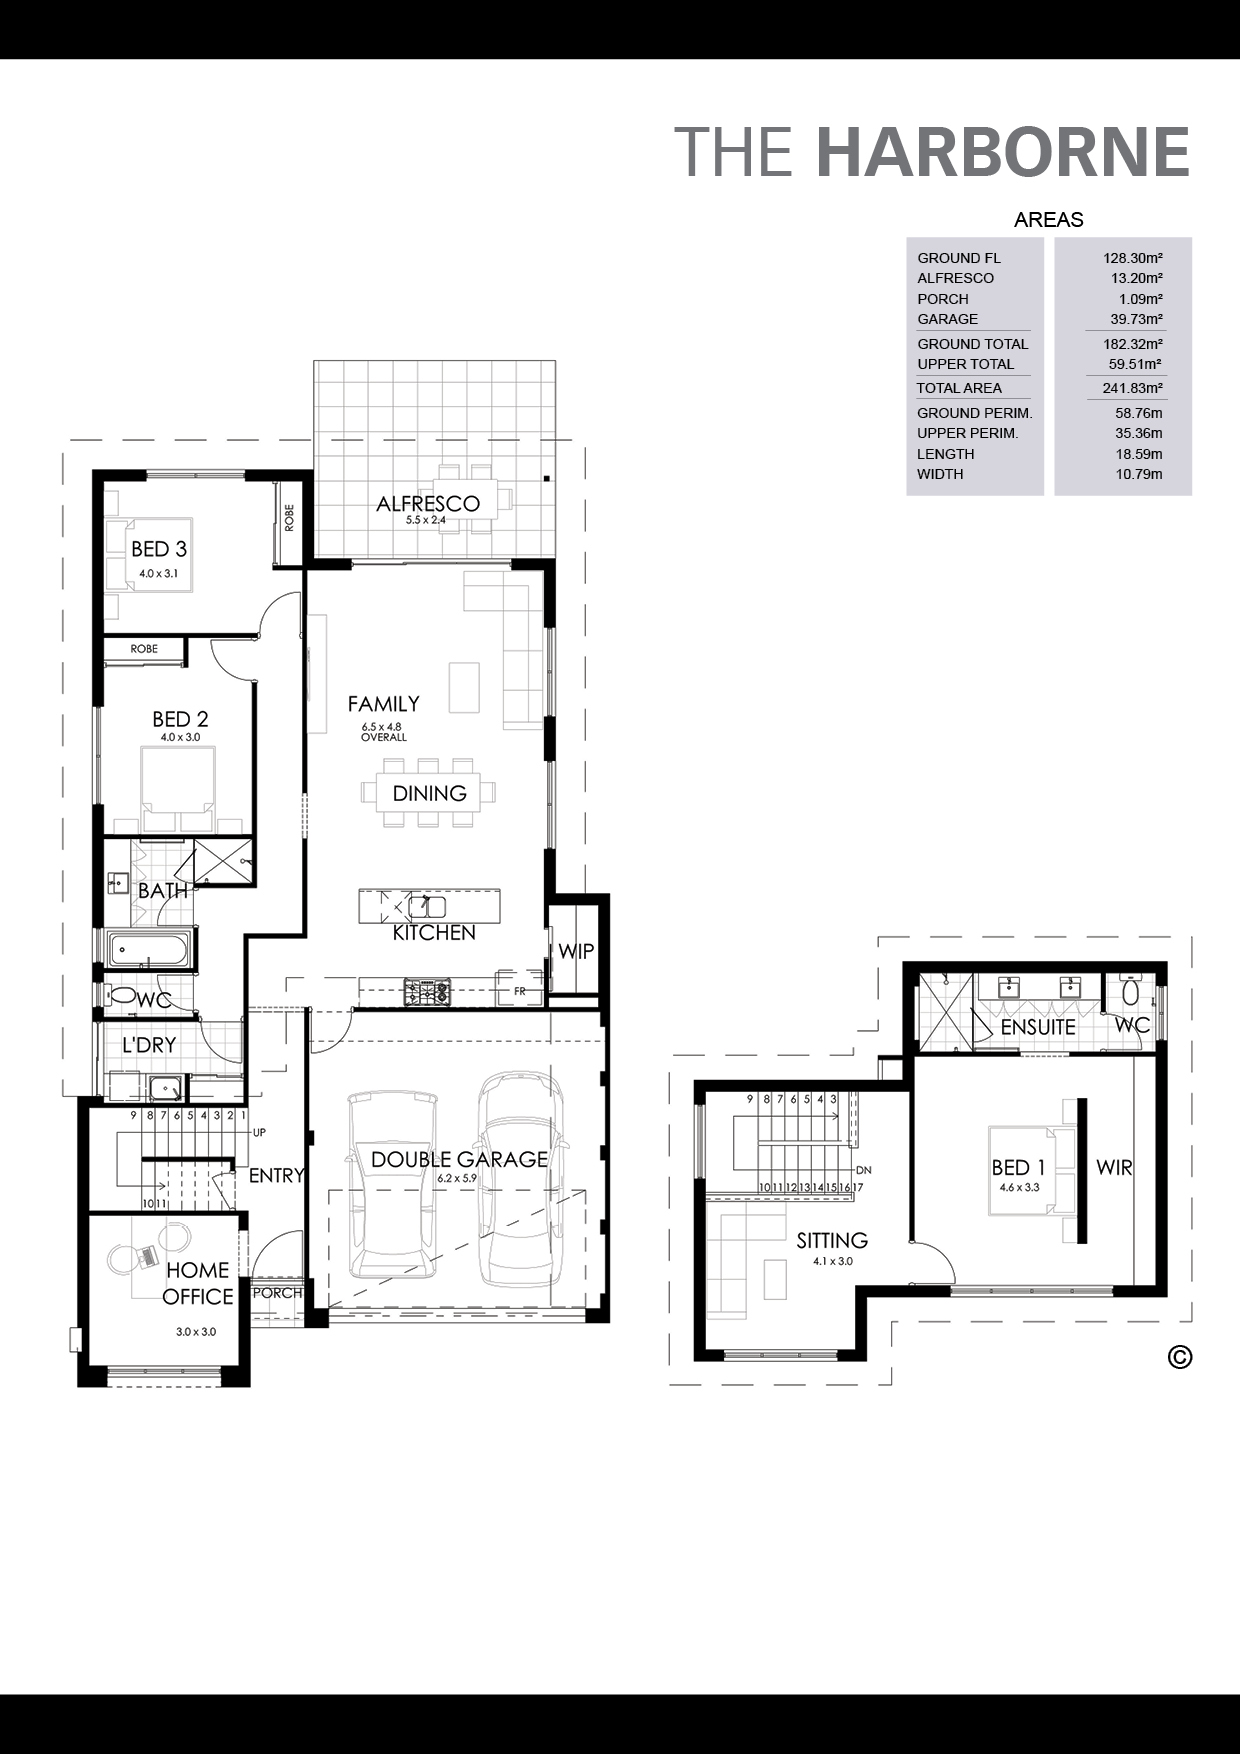 The Harborne Floorplan